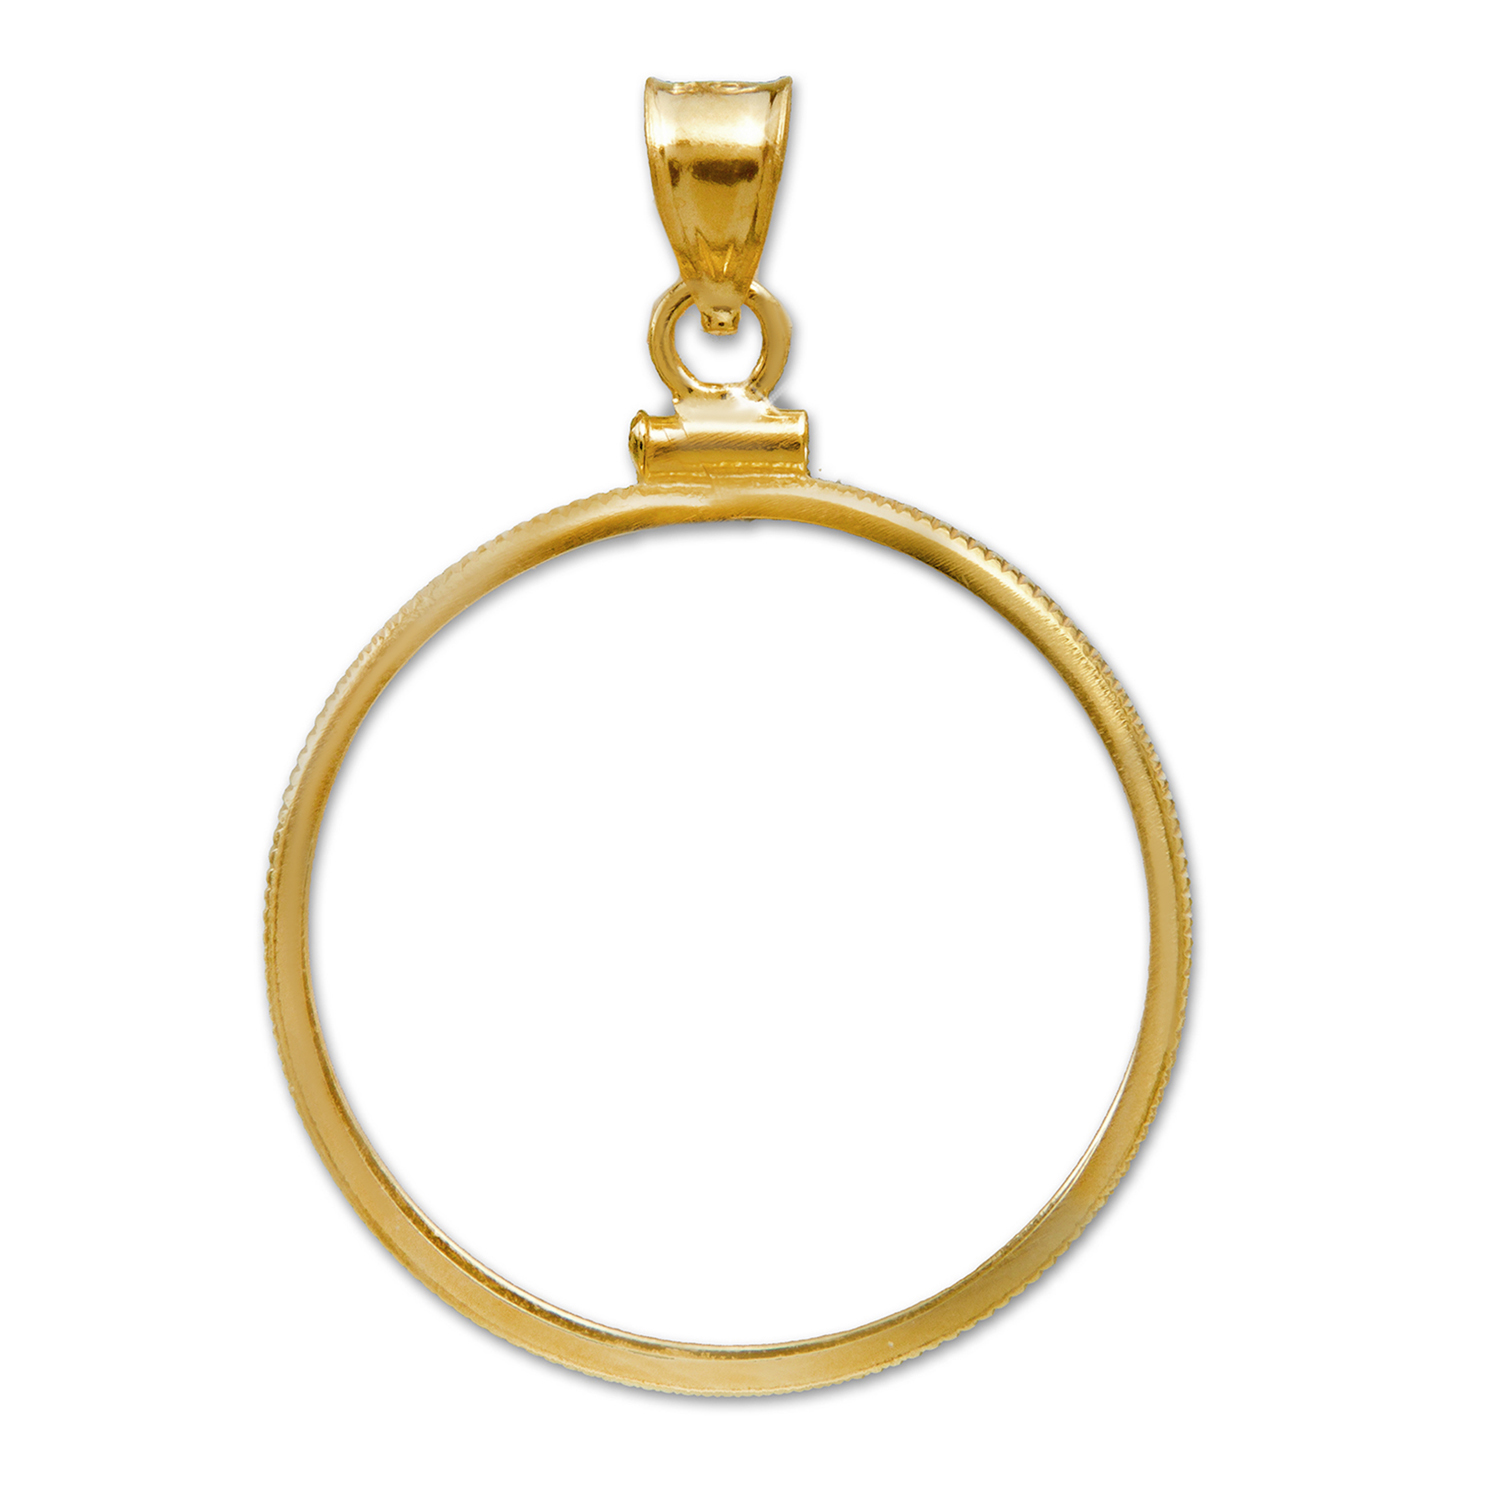 14K Gold Screw-Top Plain-Front Coin Bezel For $5 U.S. Gold Coins